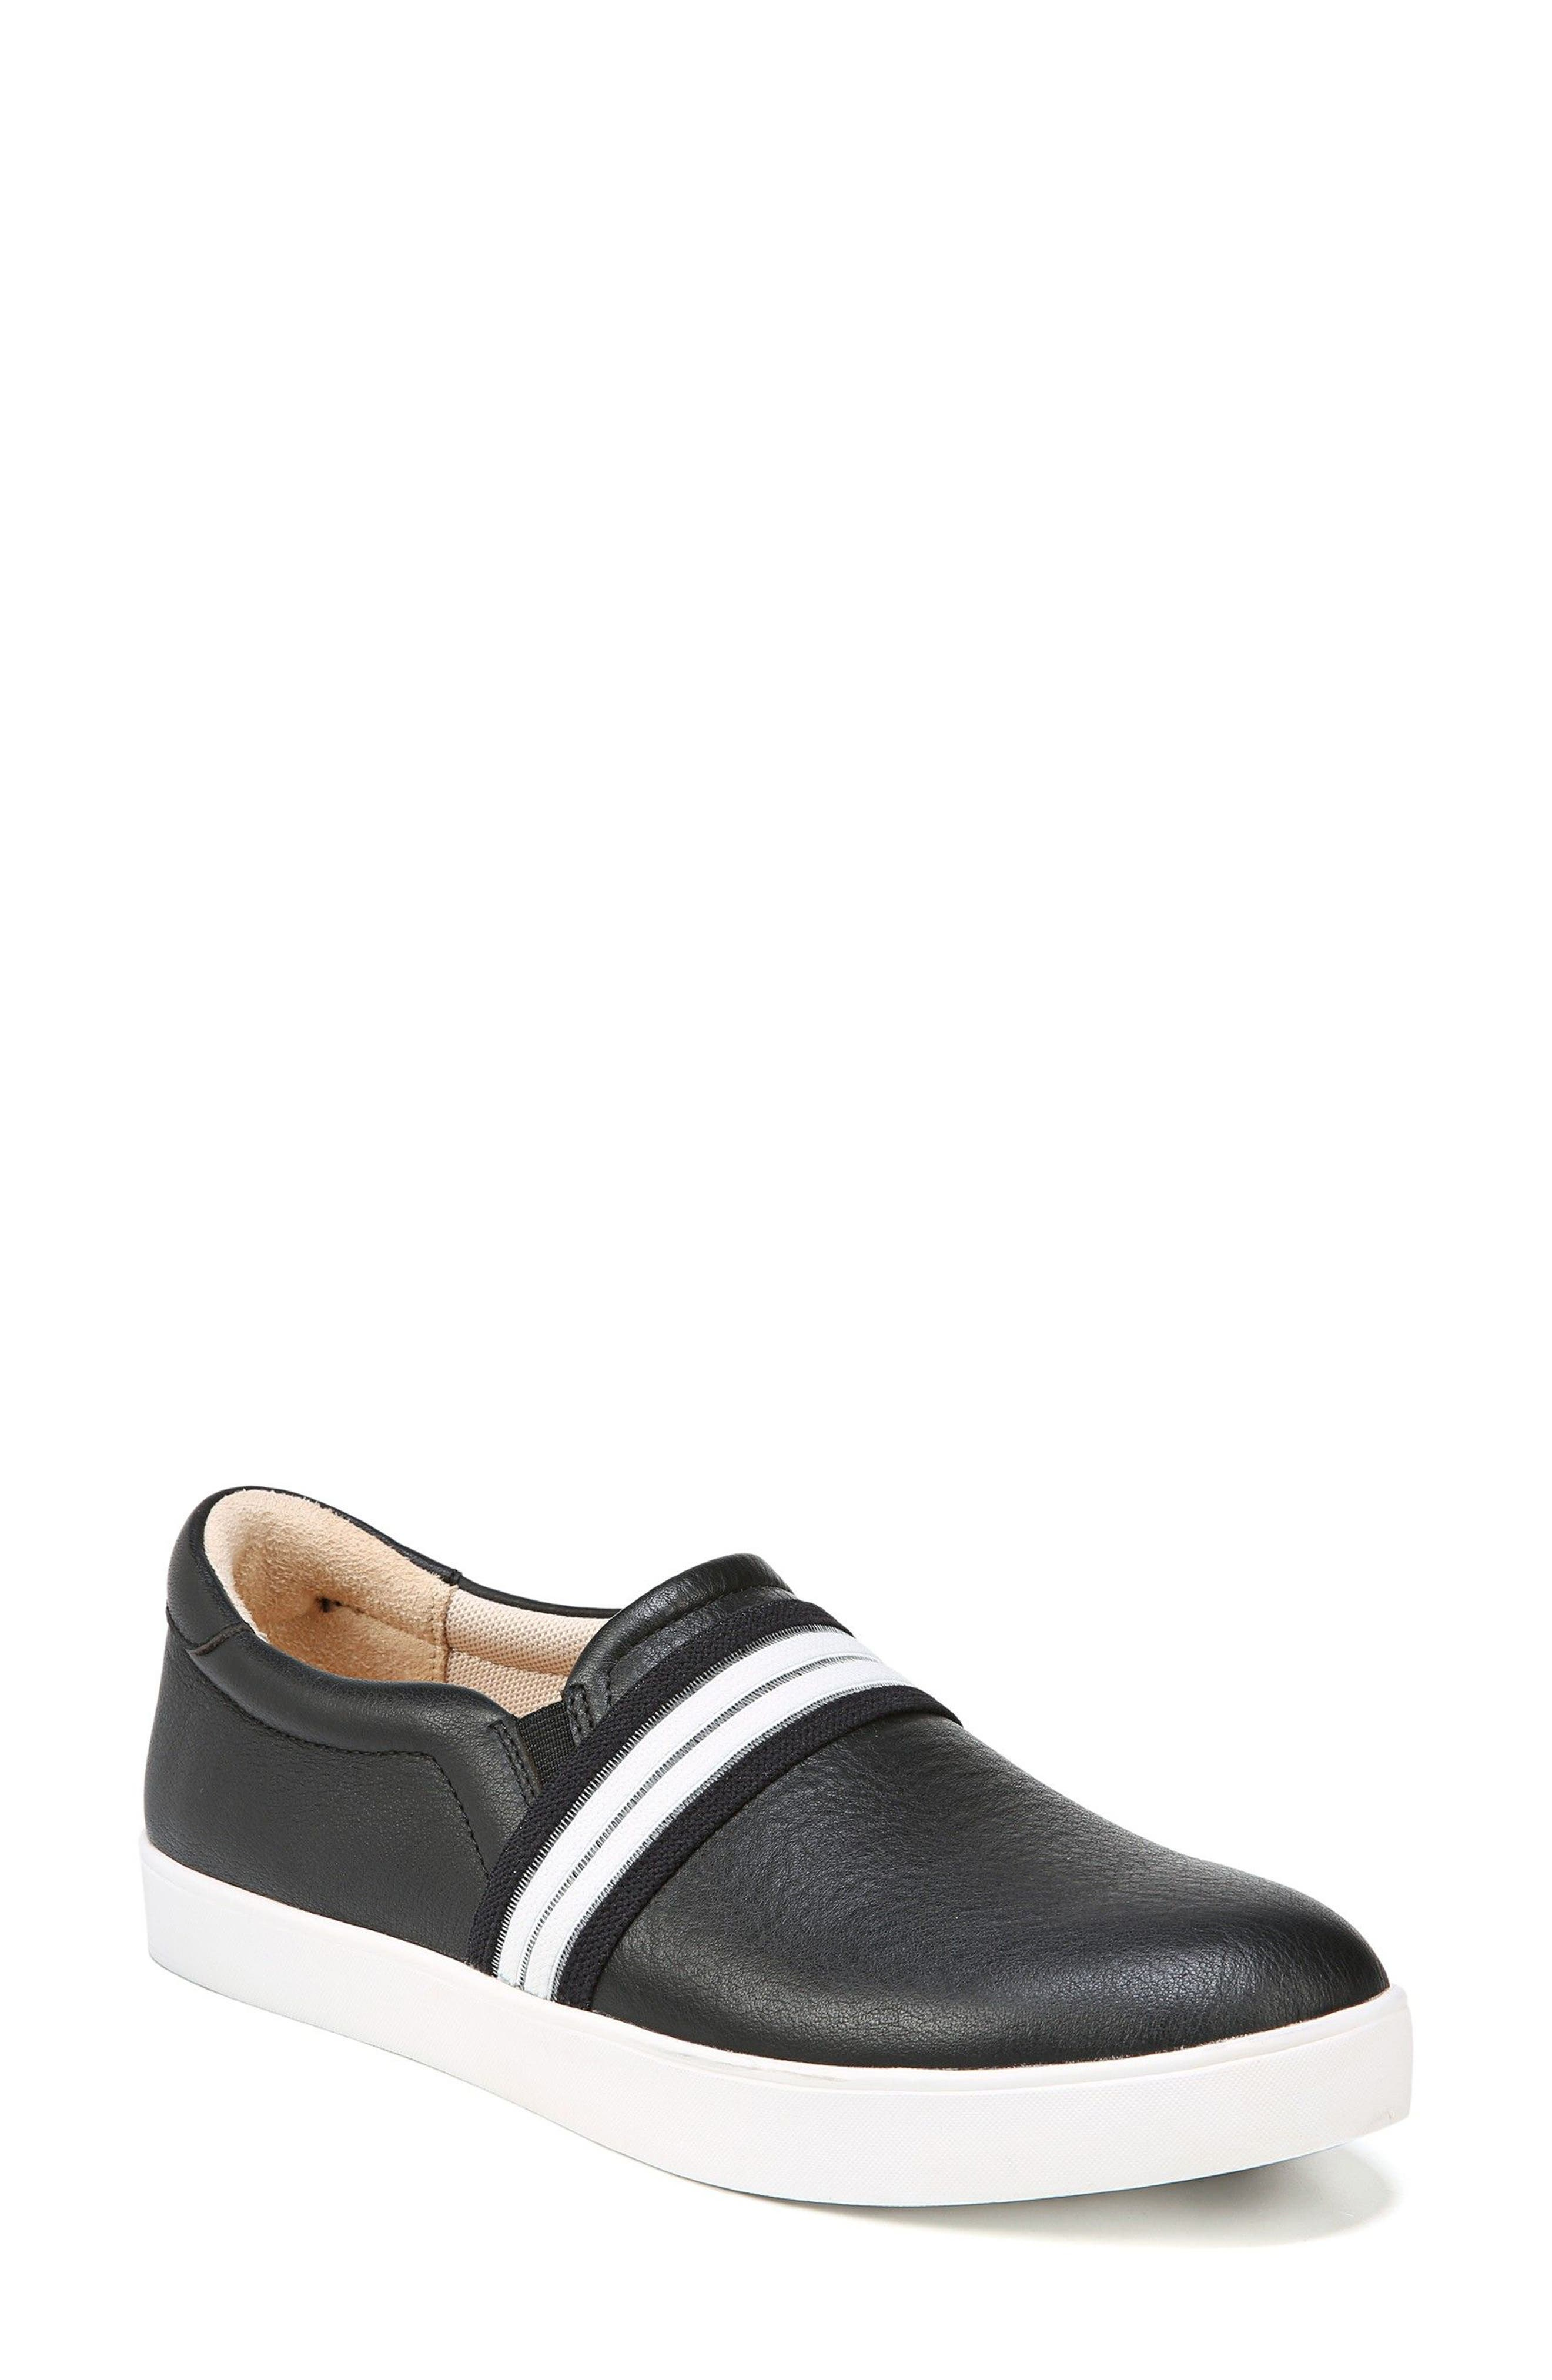 Scout Slip-On Sneaker,                         Main,                         color, BLACK LEATHER 2